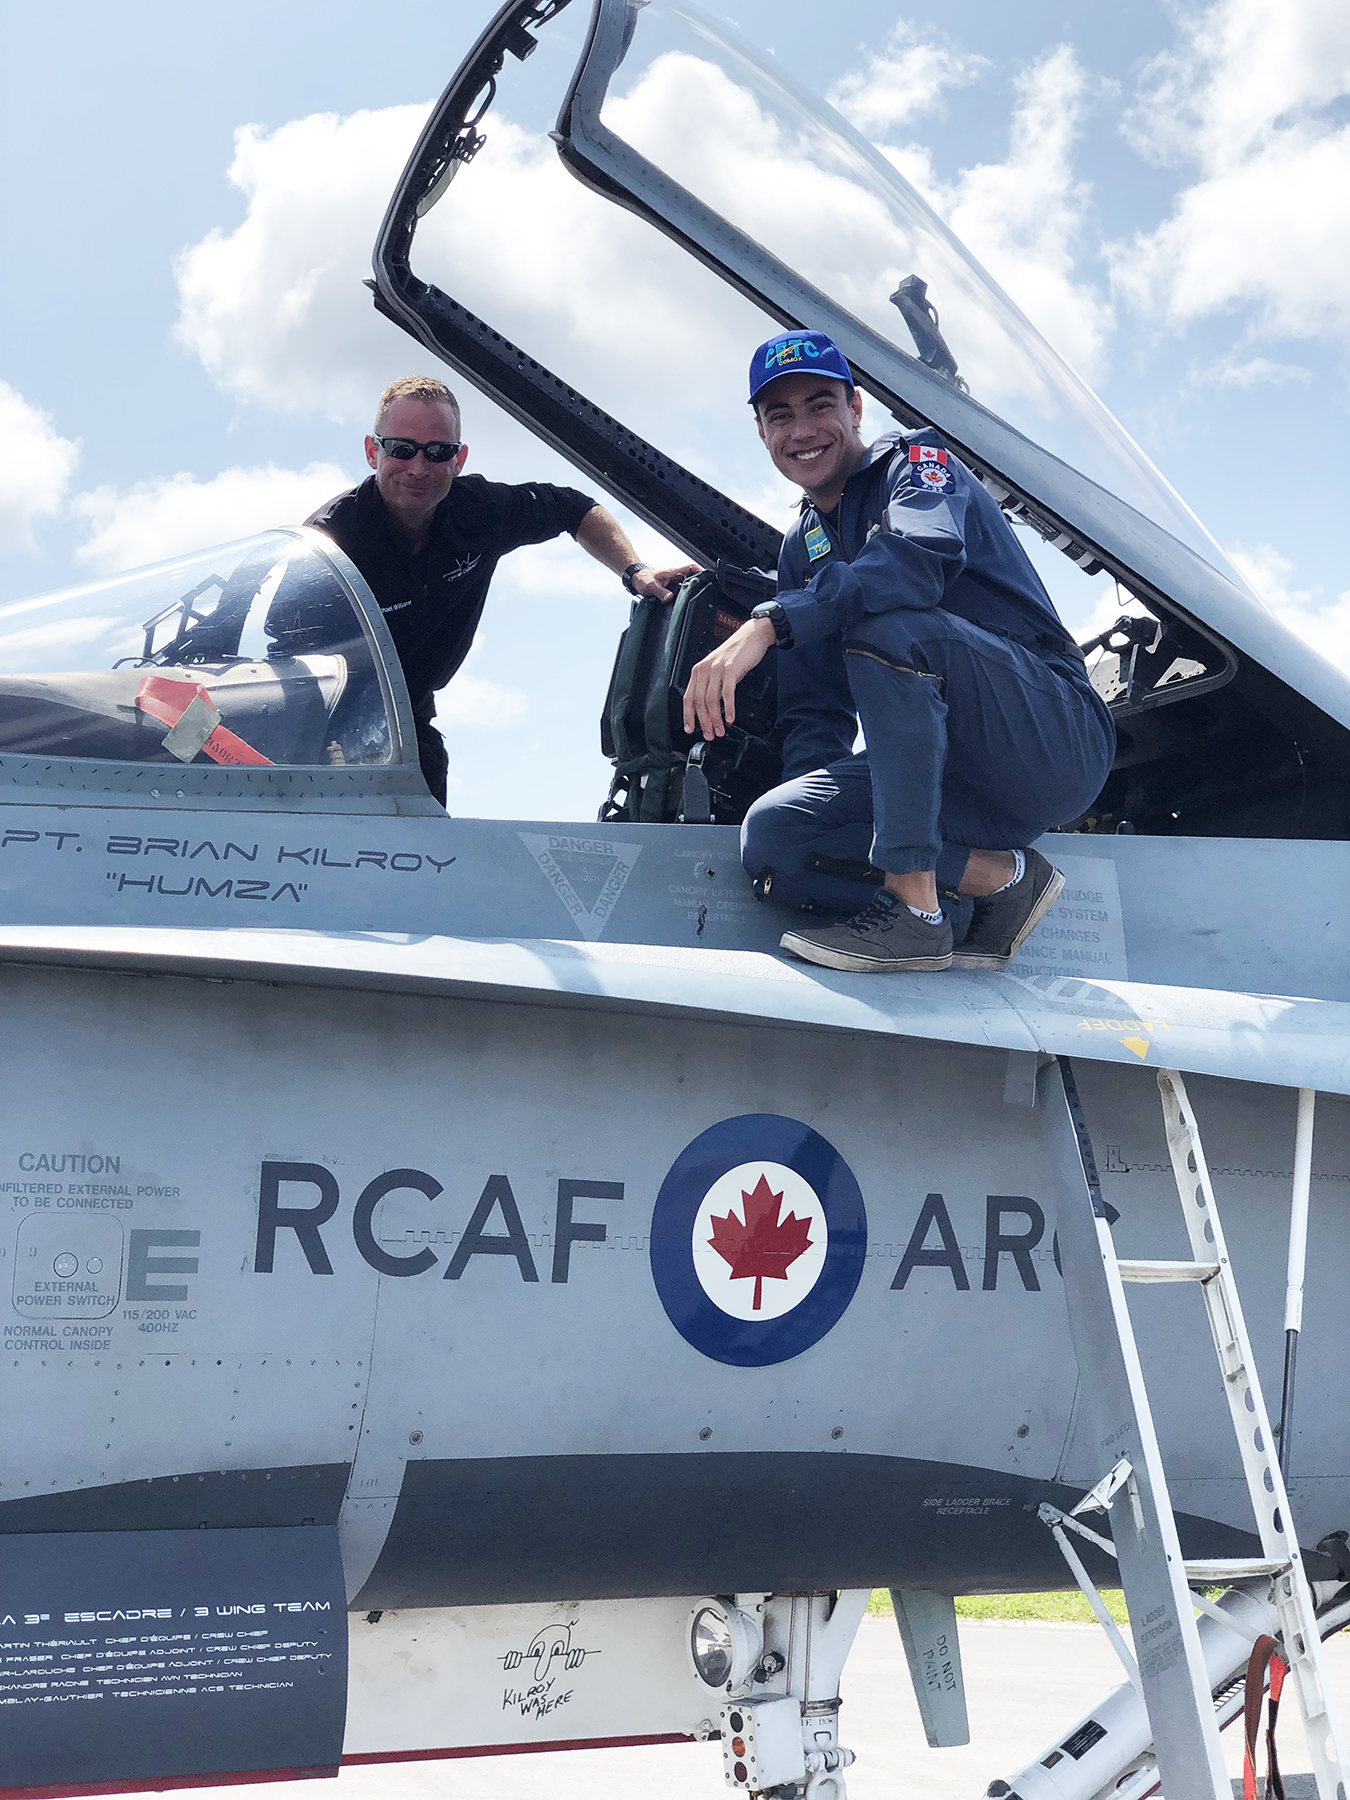 Cadet Warrant Officer First Class Nicholas Lourens (right) and Master Corporal Mike Williams crouch on opposite wings of the 2019 Canadian Armed Forces Demonstration Hornet. PHOTO: Lieutenant Becky Major